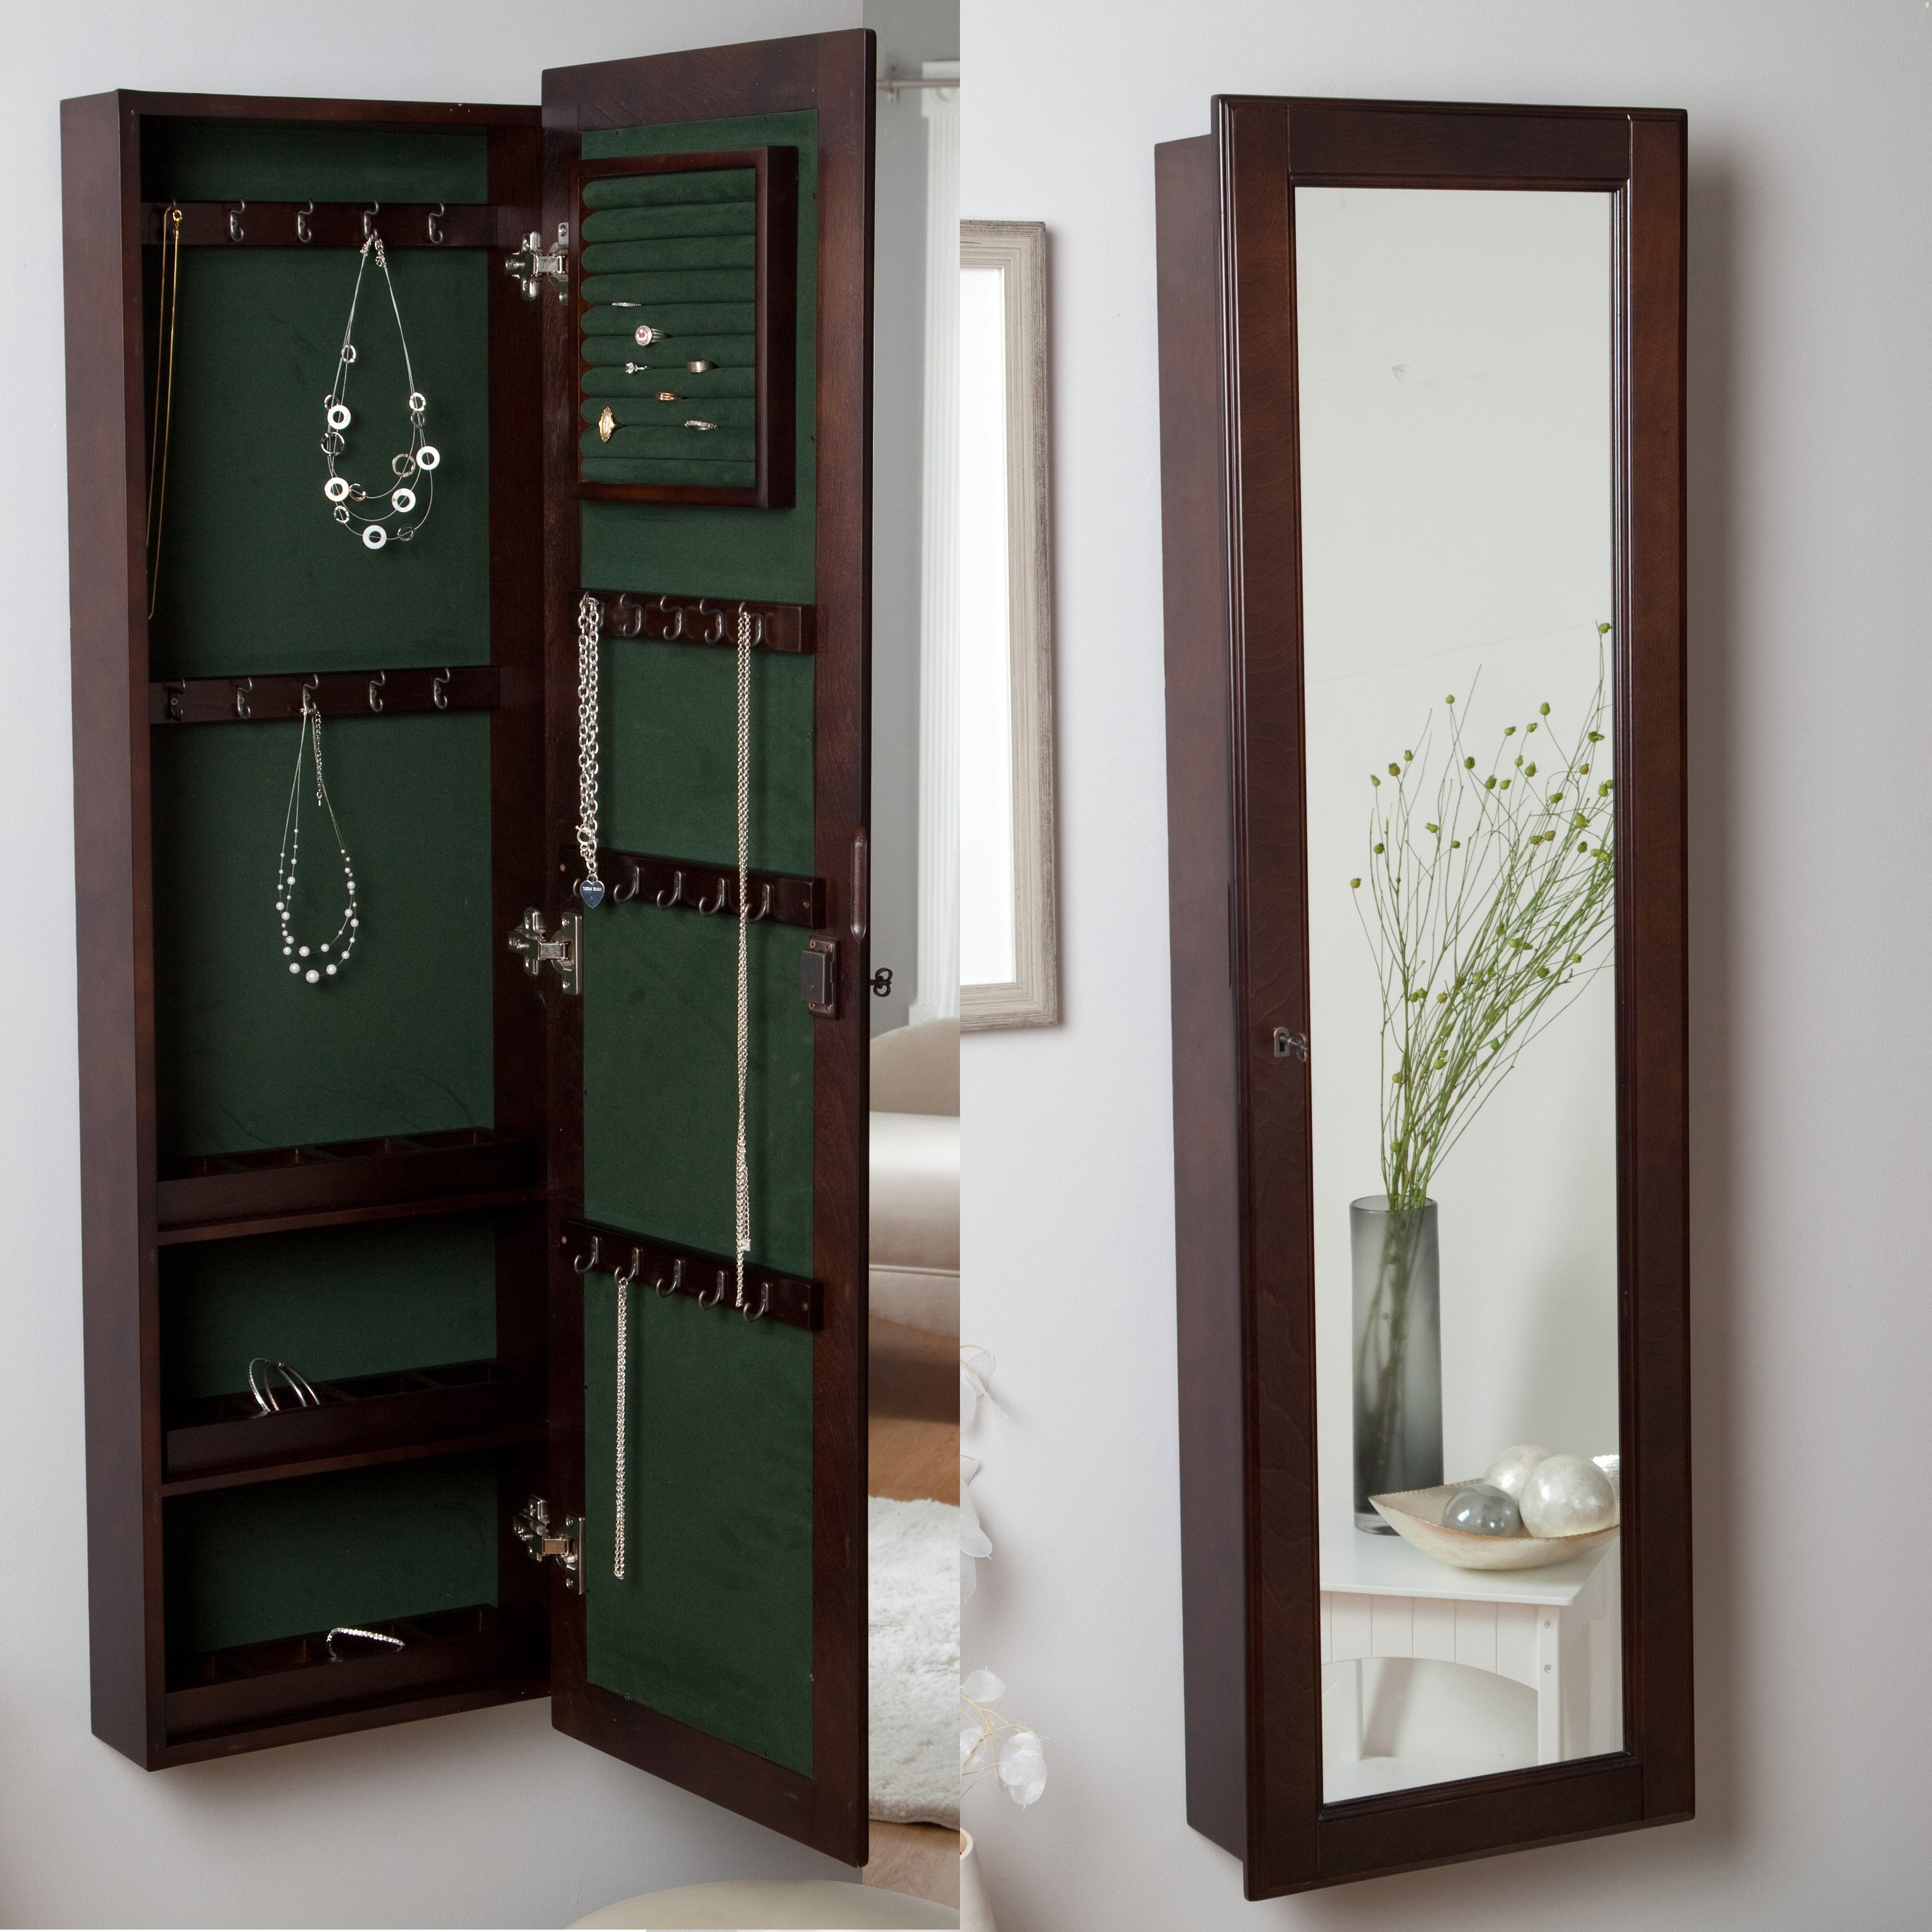 Jewelry Wall Mirrors Intended For Fashionable Wall Mounted Locking Wooden Jewelry Armoire – 14.5W X 50H In. (Gallery 7 of 20)